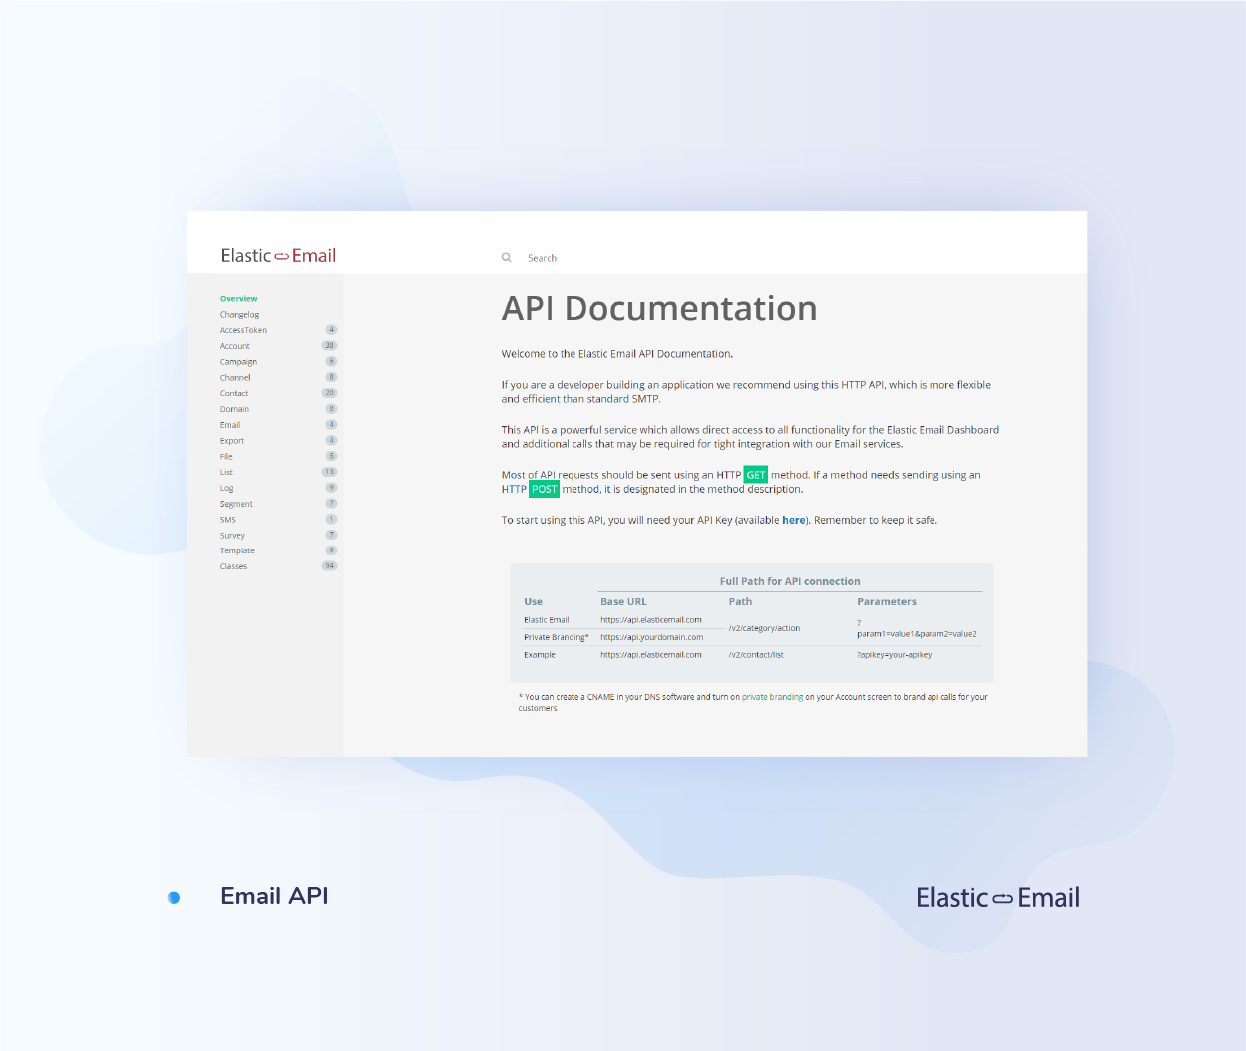 Elastic Email Demo - Access to our documentation and integration libraries